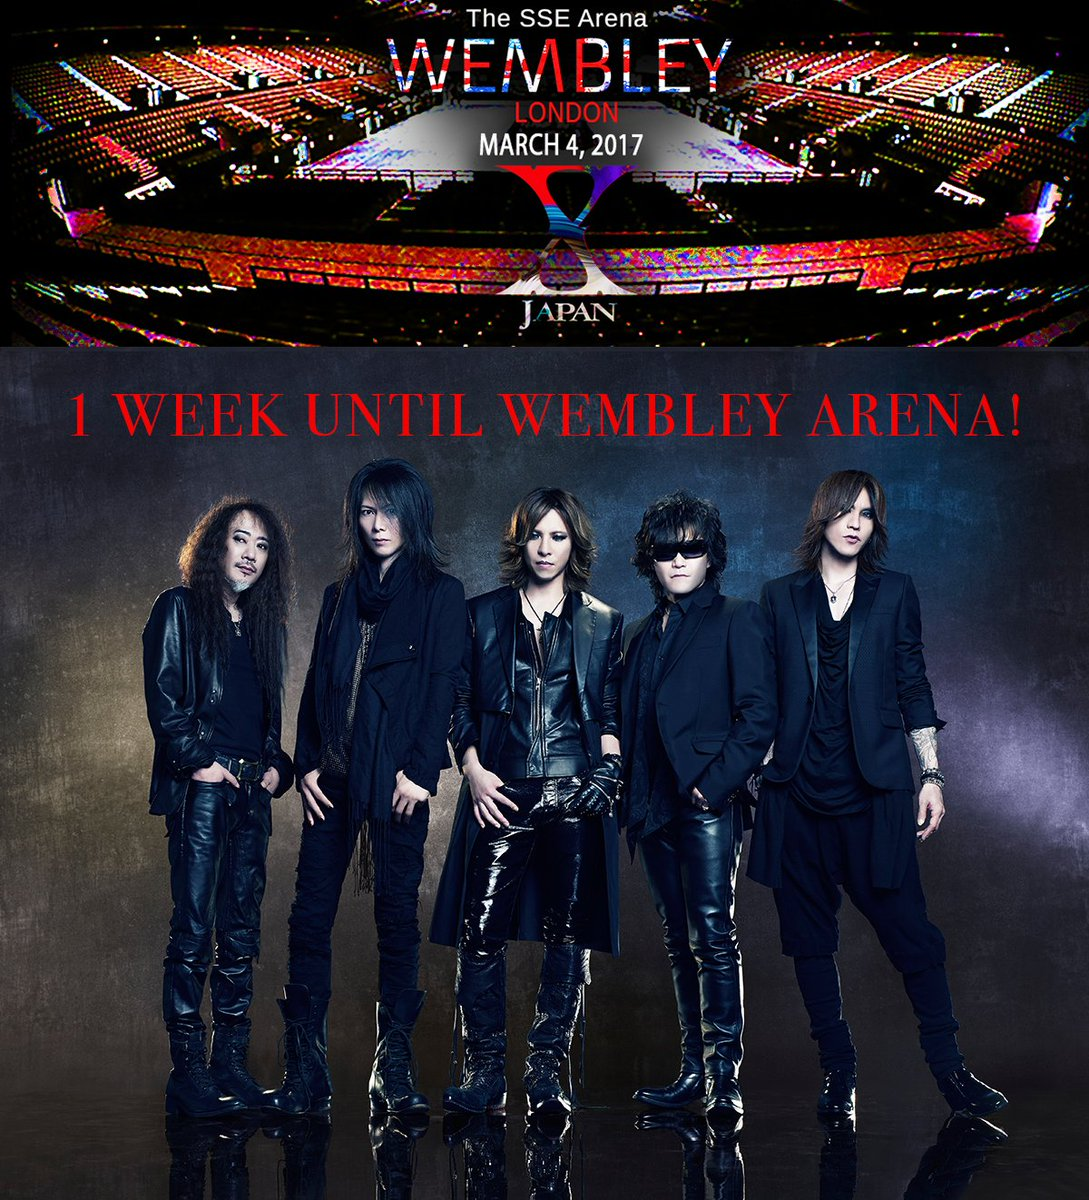 One week until #XJapan at #Wembley @SSEArena in London on March 4th!  http:// bit.ly/XJapanWembley  &nbsp;  <br>http://pic.twitter.com/dz1CRzHBMz